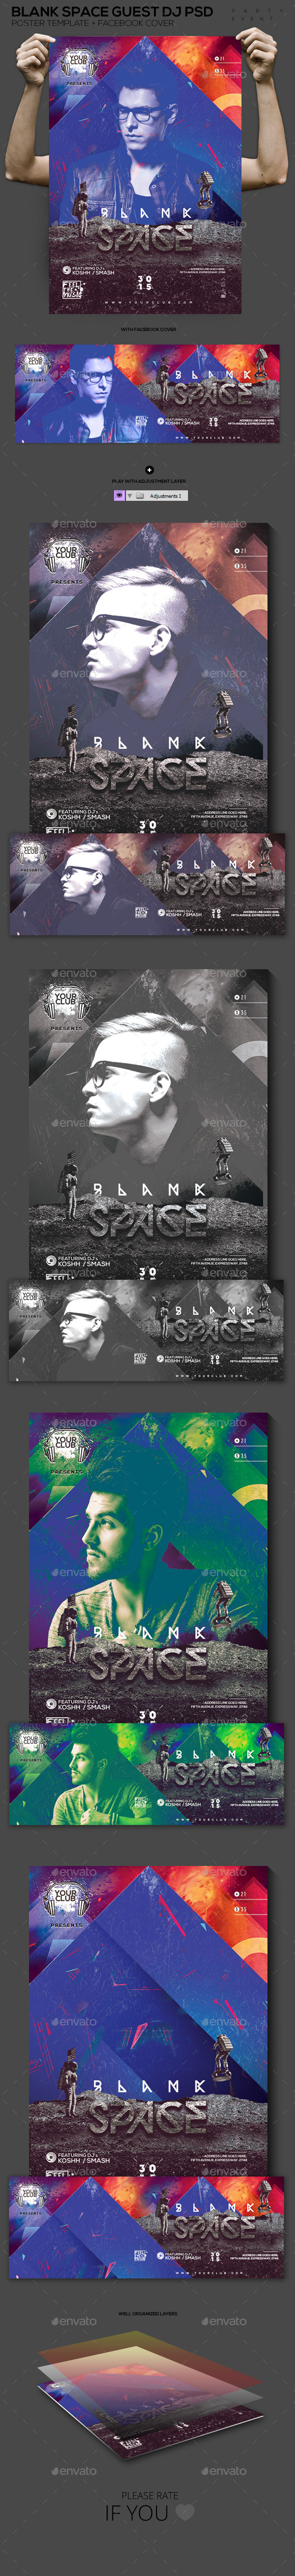 Blank Space Guest DJ PSD Template - Events Flyers